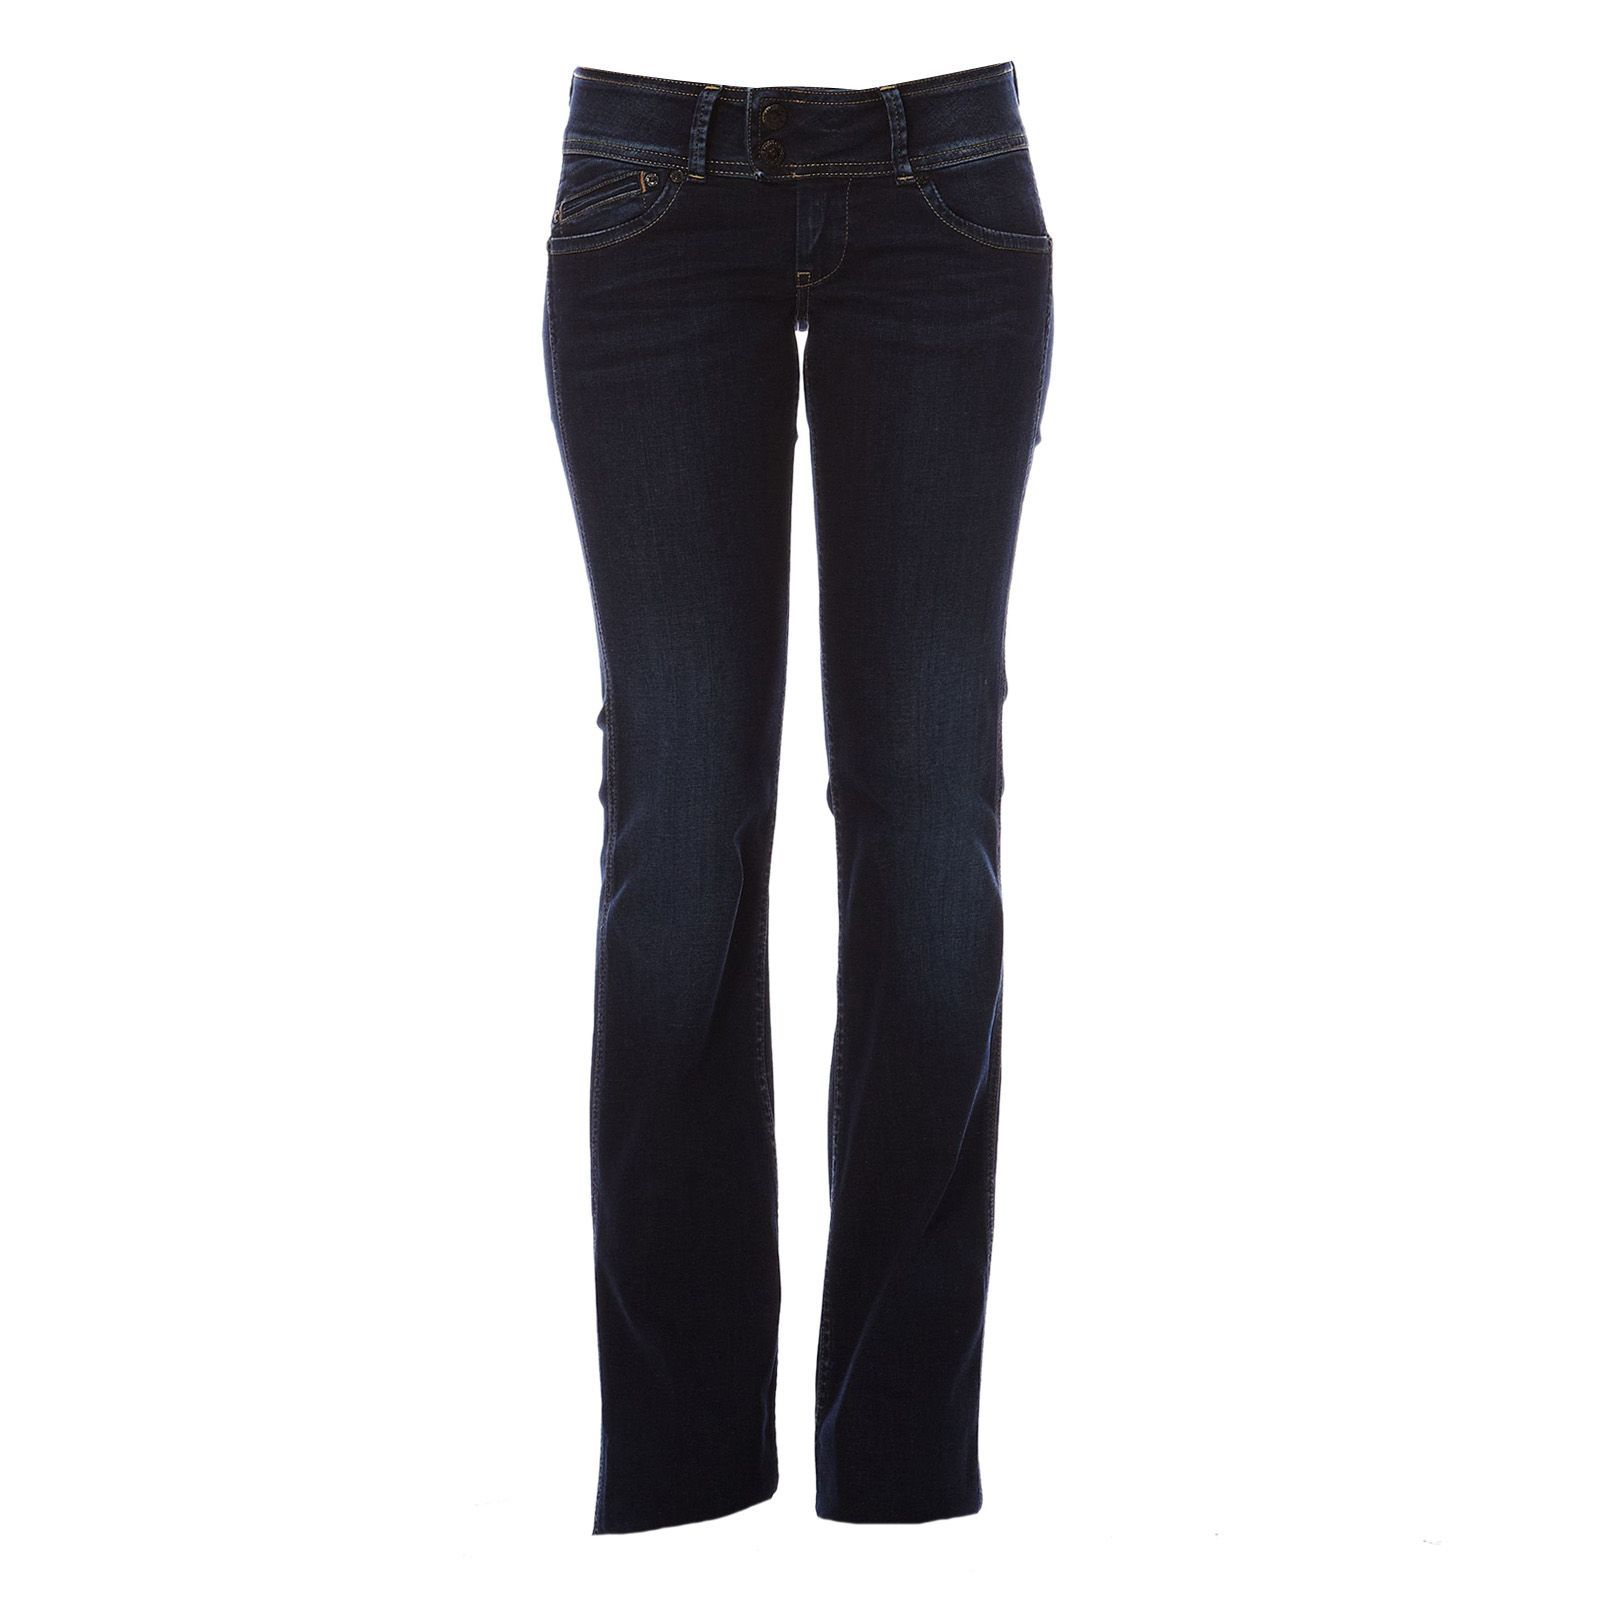 Pepe Jeans London Pimlico - Jean flare - bleu denim